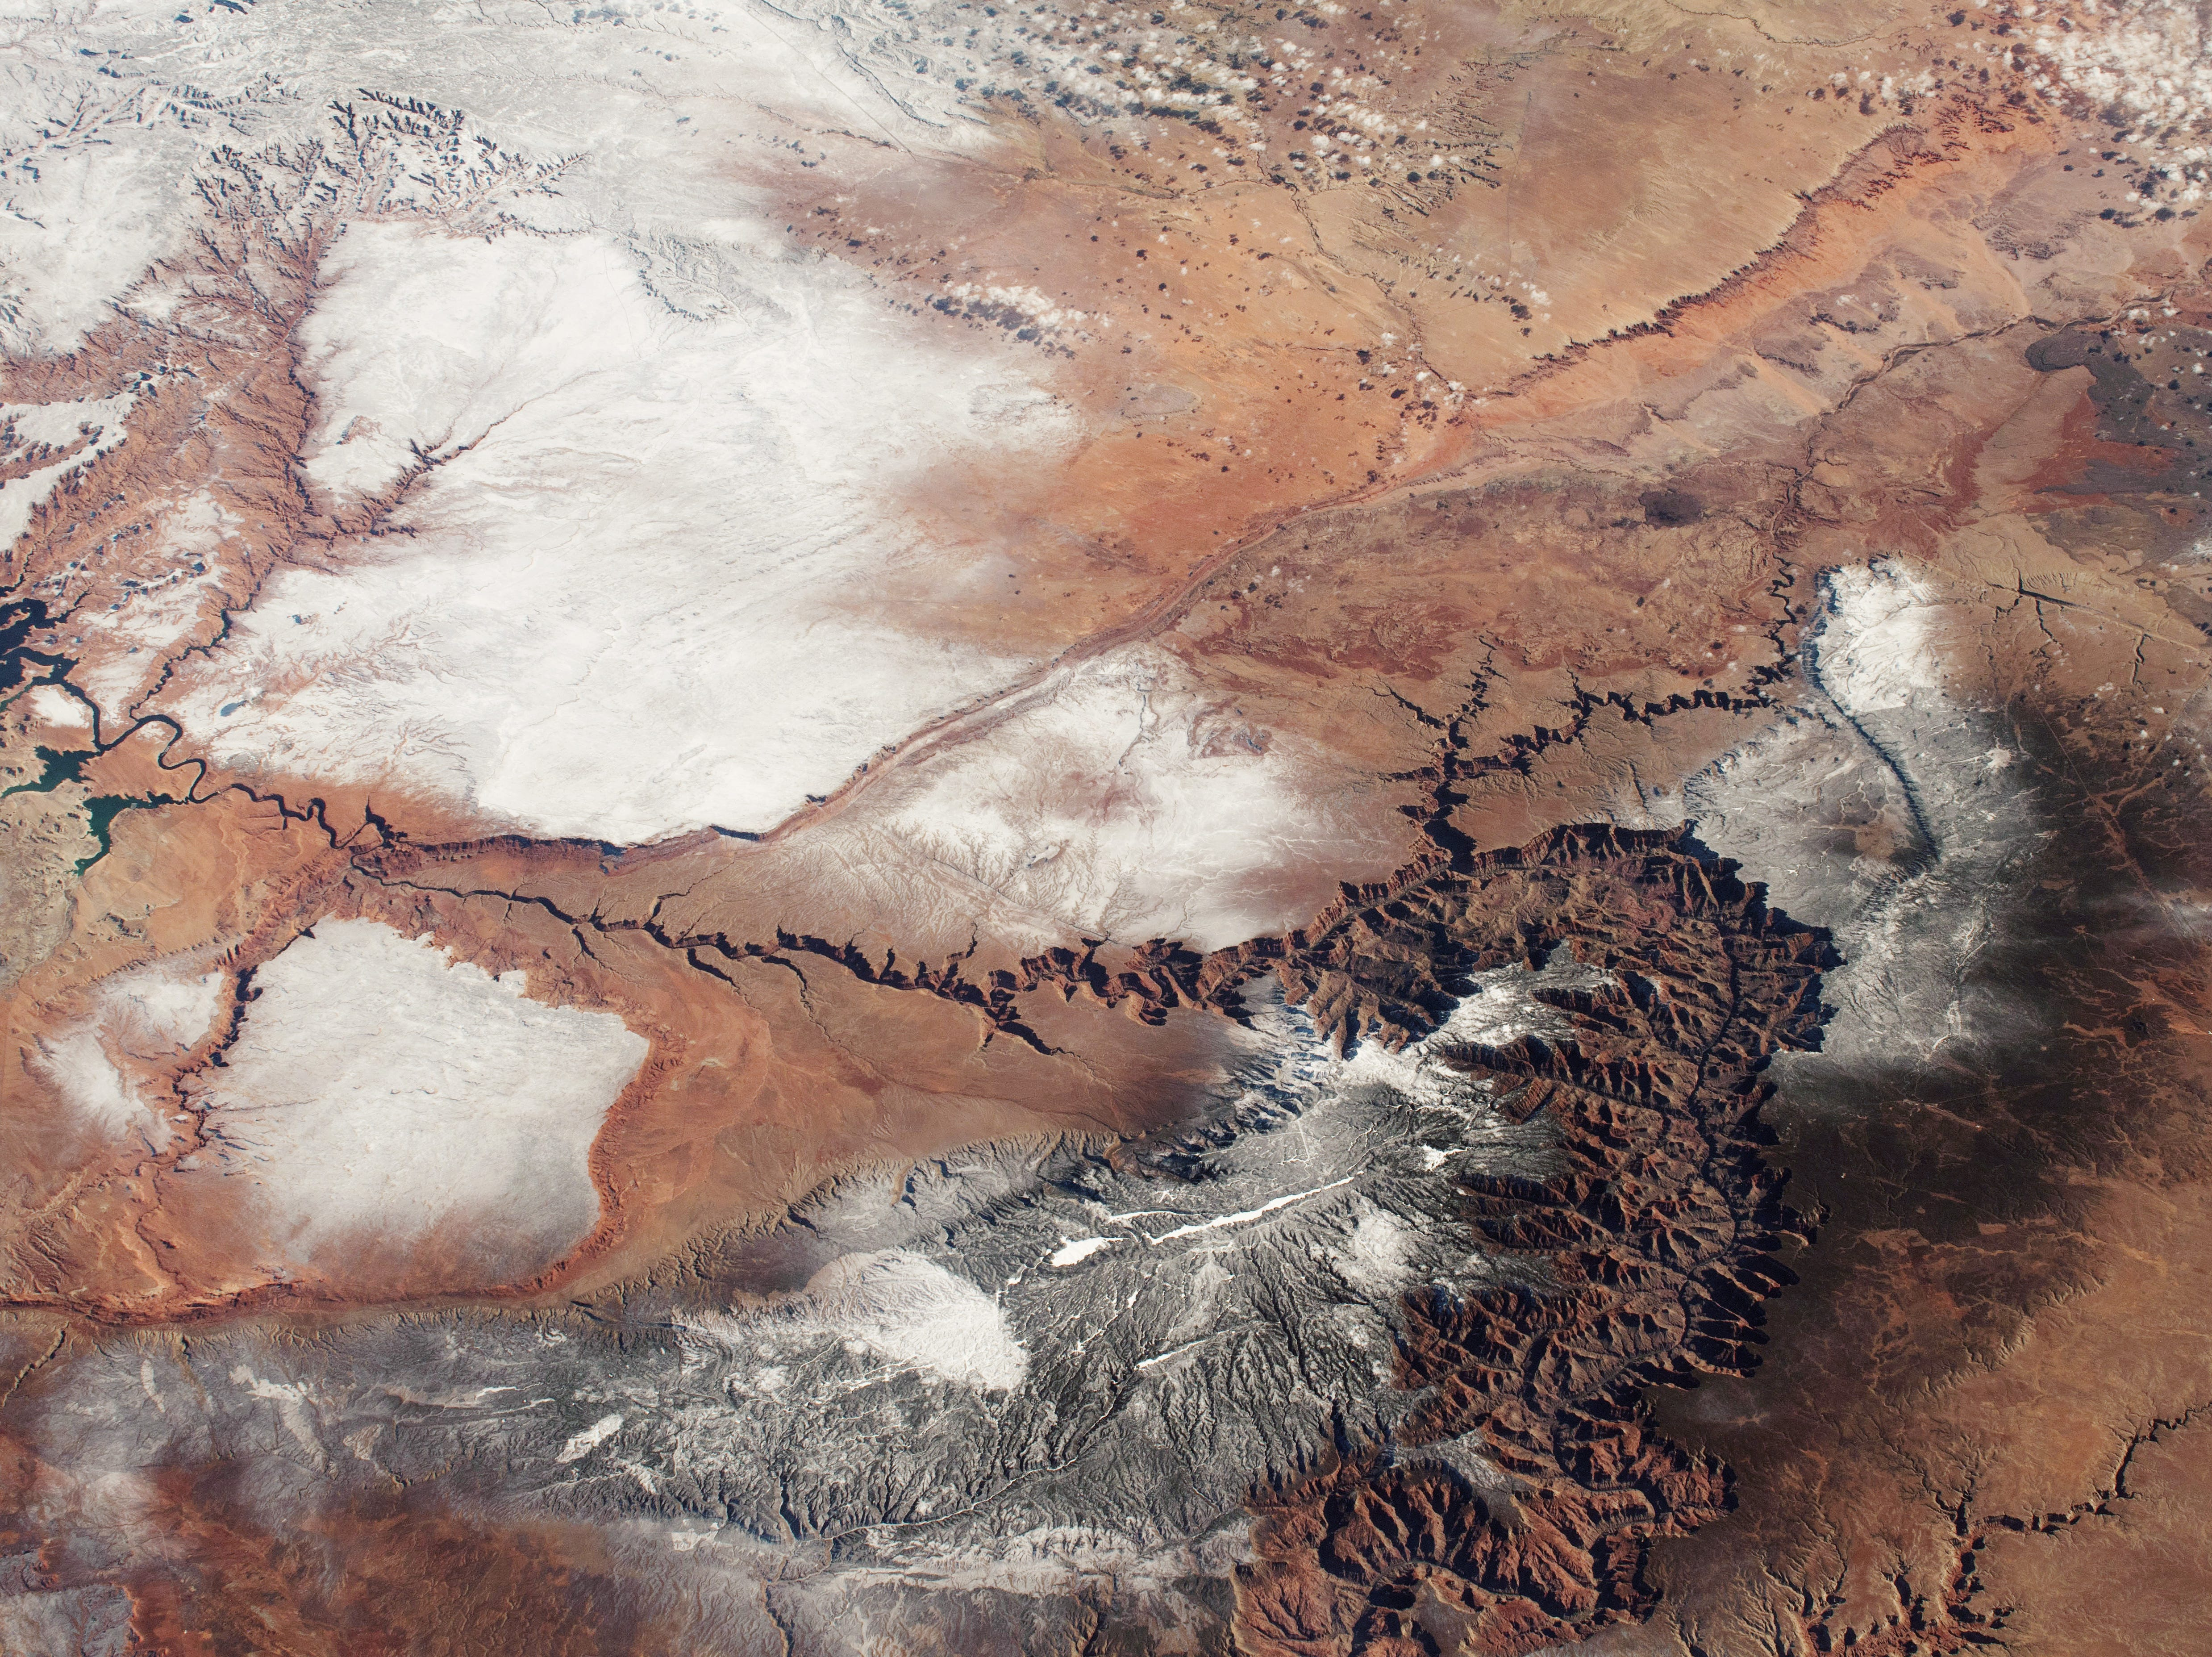 An astronaut aboard the International Space Station focused a camera on the Grand Canyon and surrounding snowy landscapes in northern Arizona on Dec. 29, 2018.  The photograph shows the ragged, steep-sided canyon walls and its numerous side canyons that contrast with the flat surrounding plains. This image was taken from an orbital vantage point over Las Vegas, nearly 240 miles to the west.